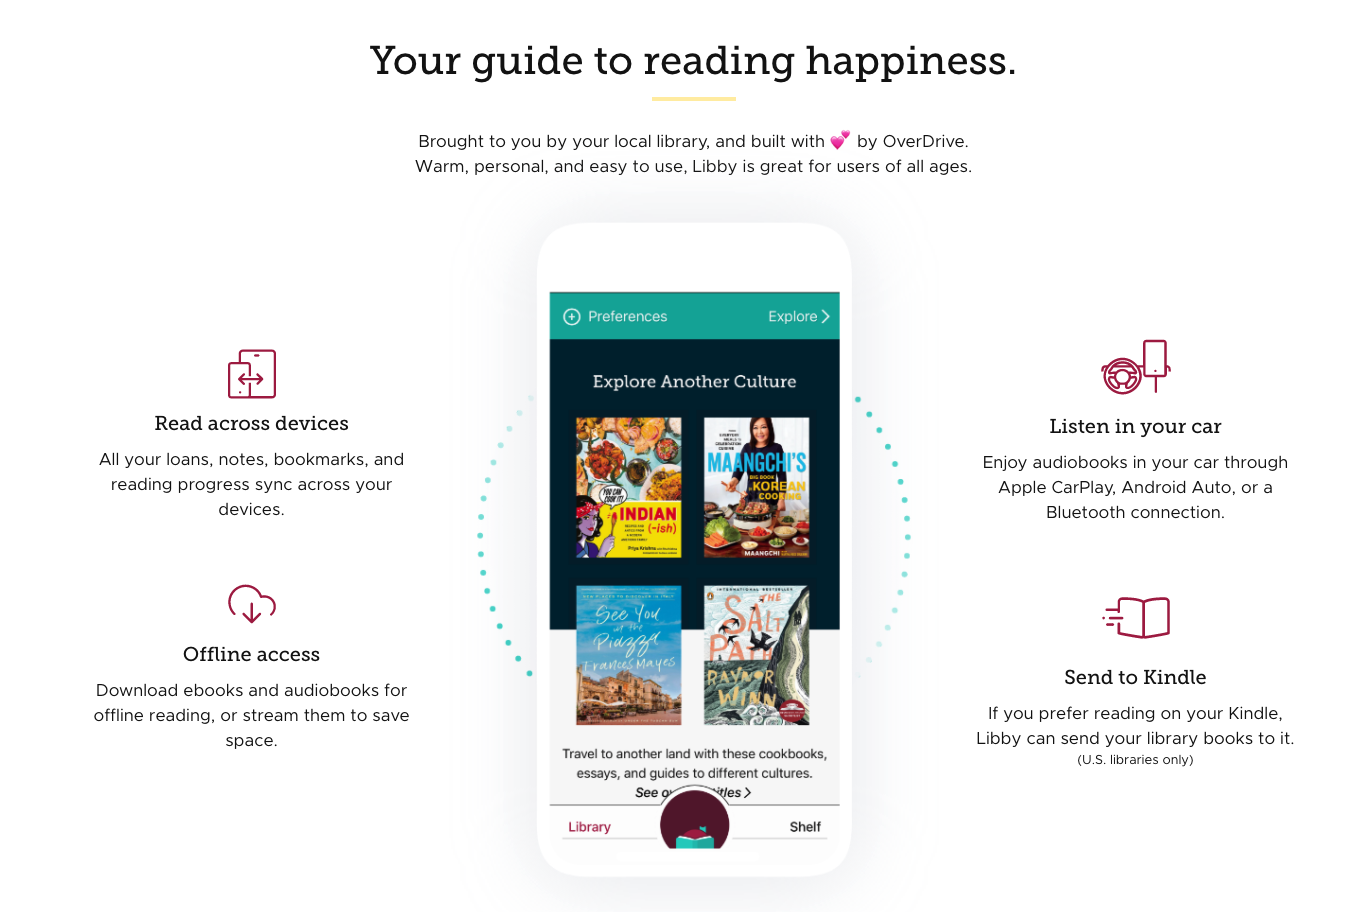 Infographic explaining the benefits of Libby: read across devices, offline access, listen in your car, and send to kindle